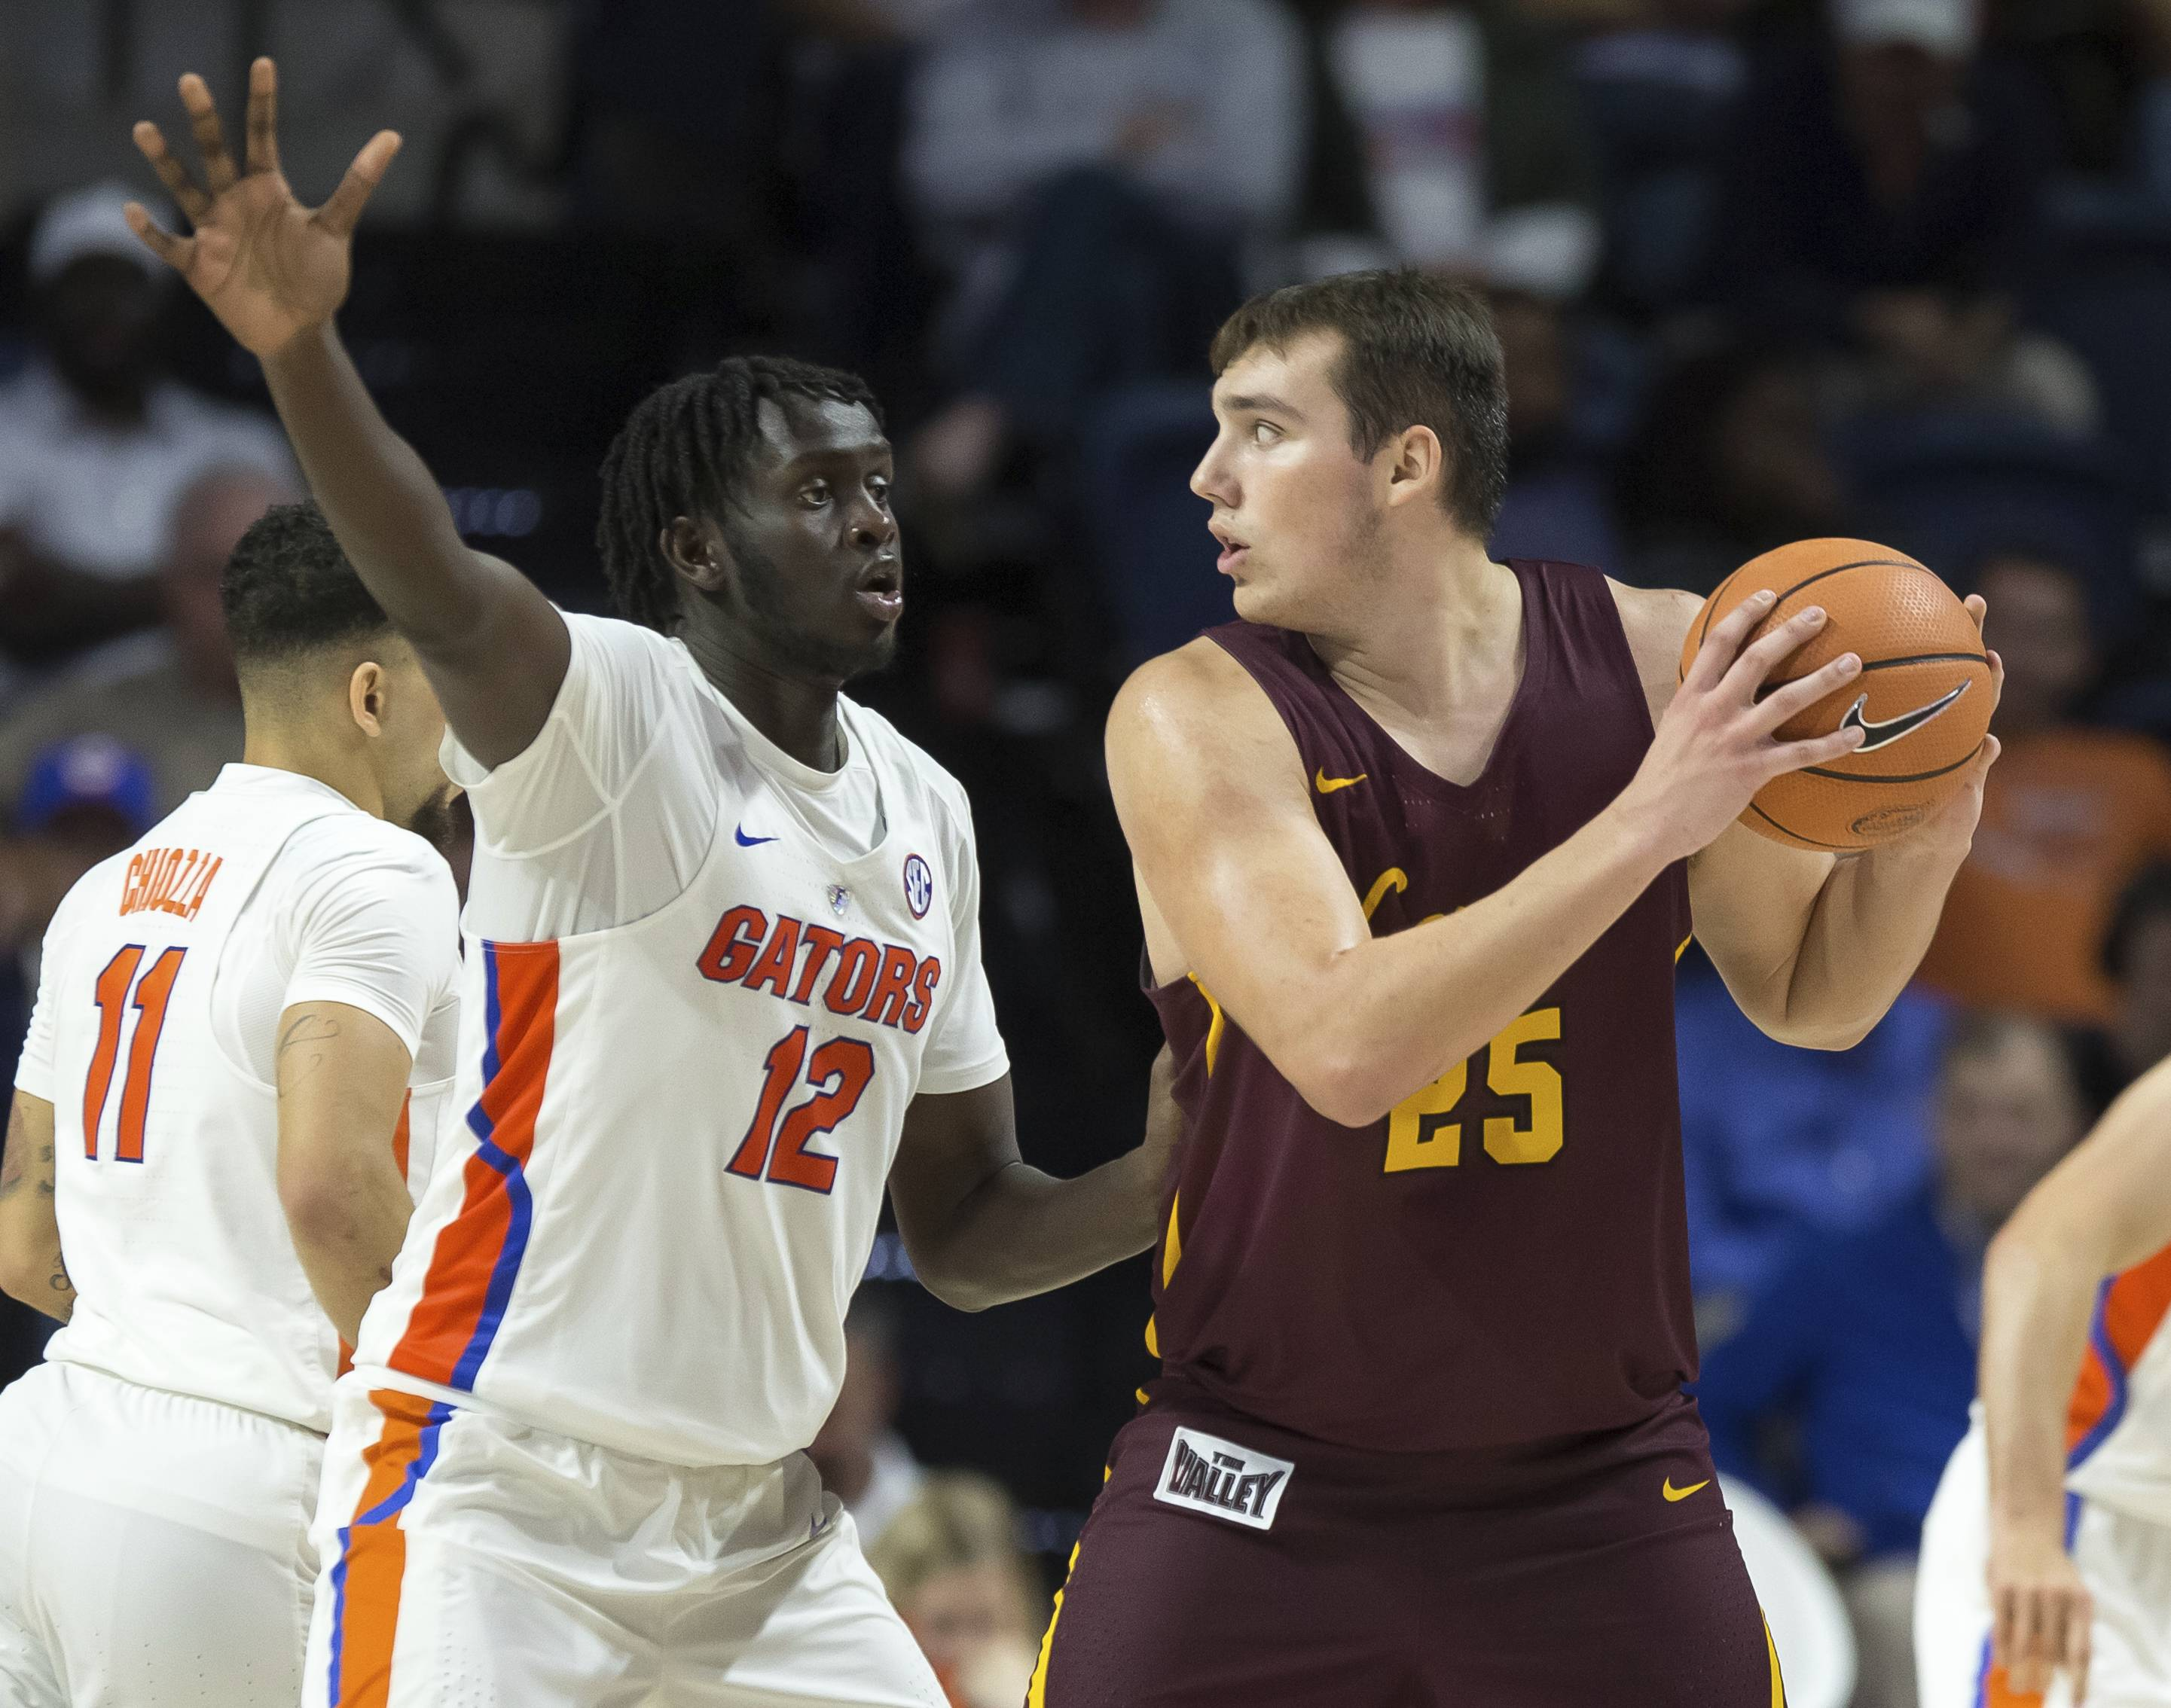 Loyola tries to stay focused on tall task at hand vs. Miami